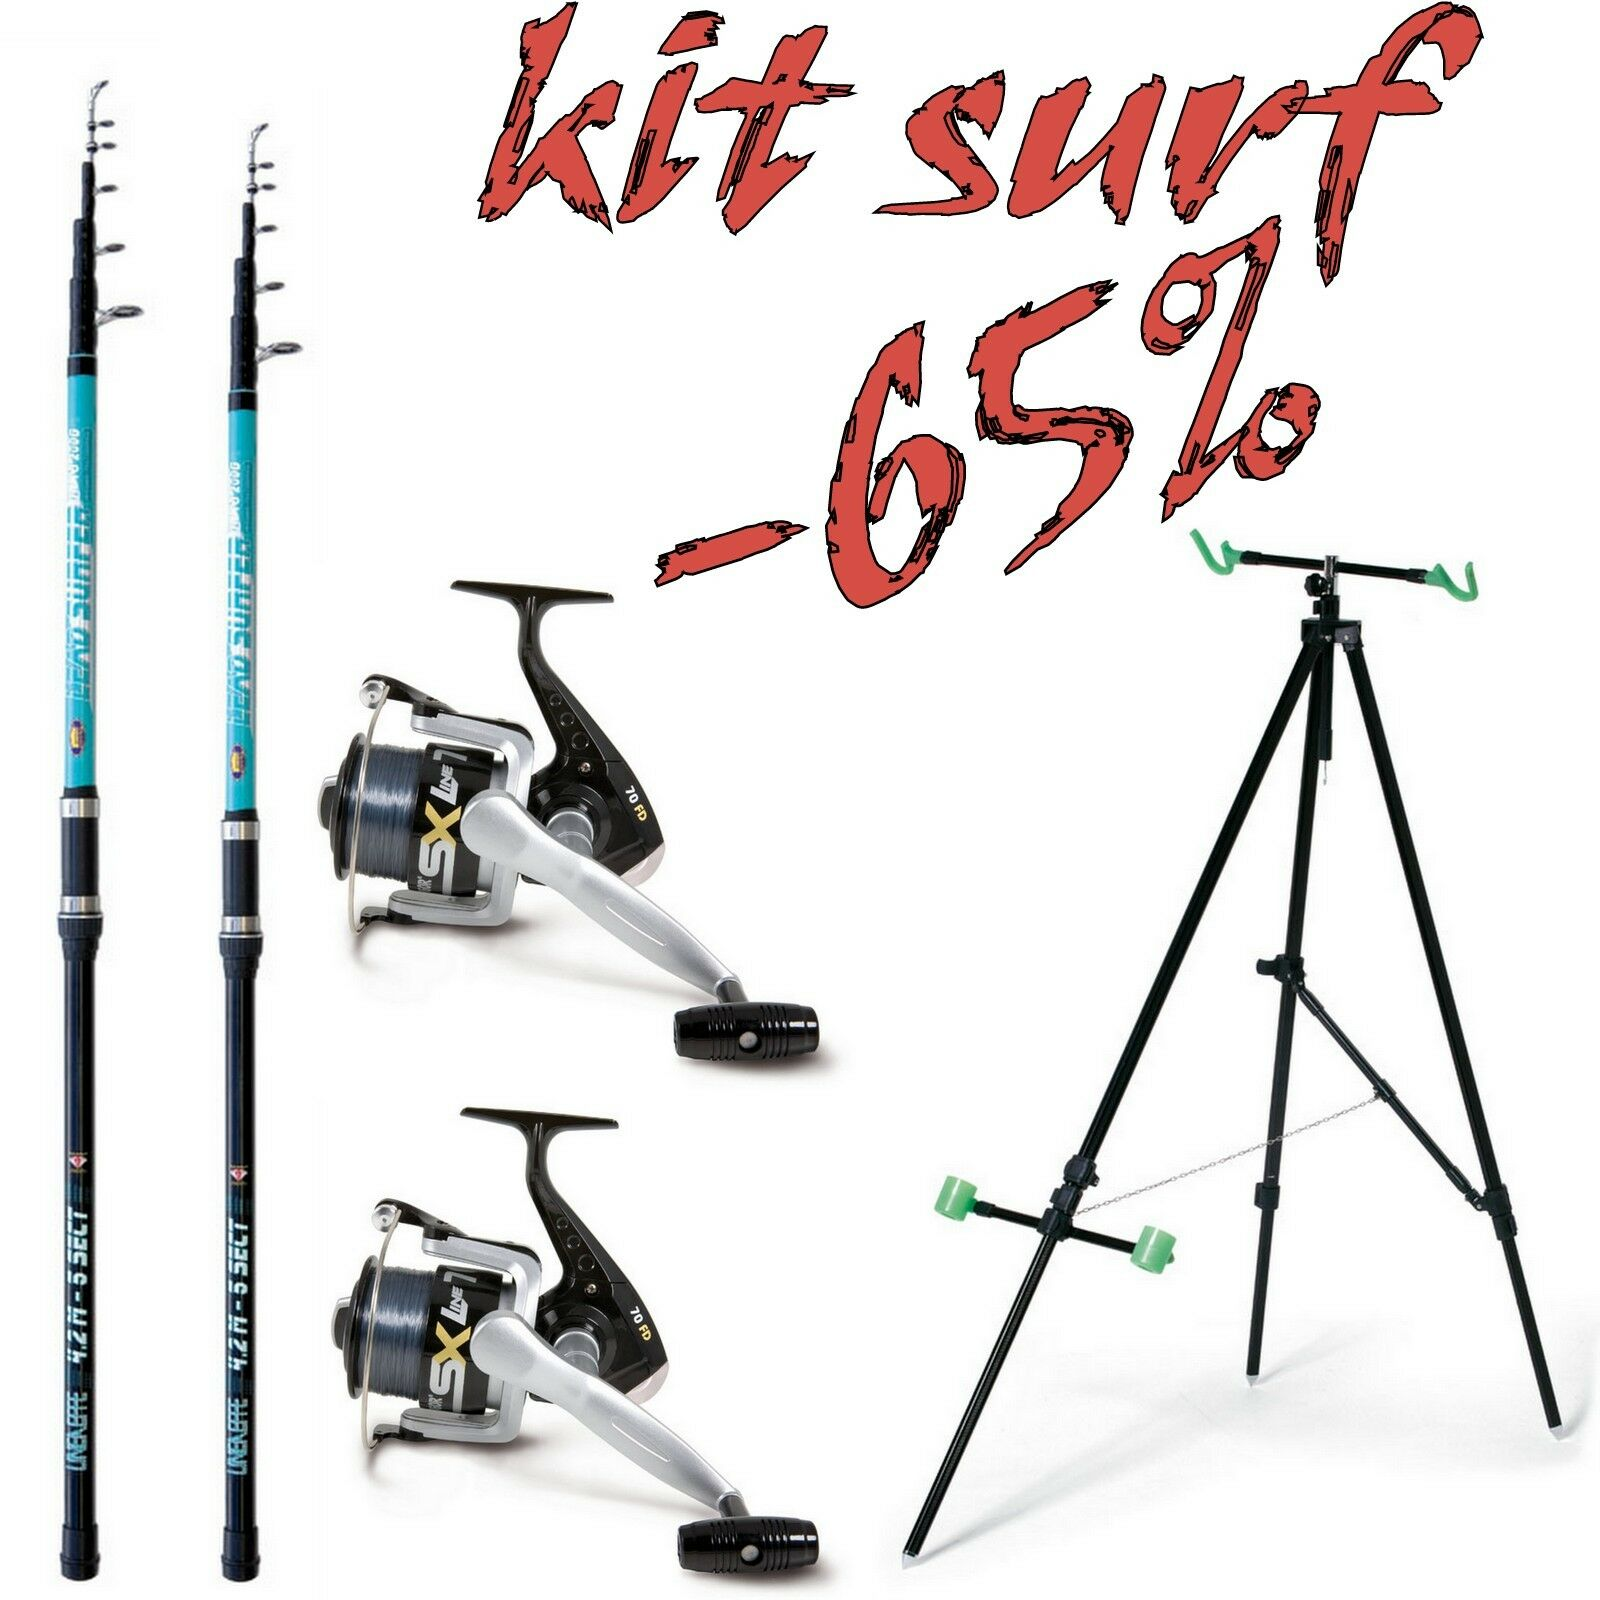 KIT SURF 2 2 2 CANNE PESCA SURFCASTING LEAD  + 2 MULINELLO 60 + TRIPODE SURF MARE 196879